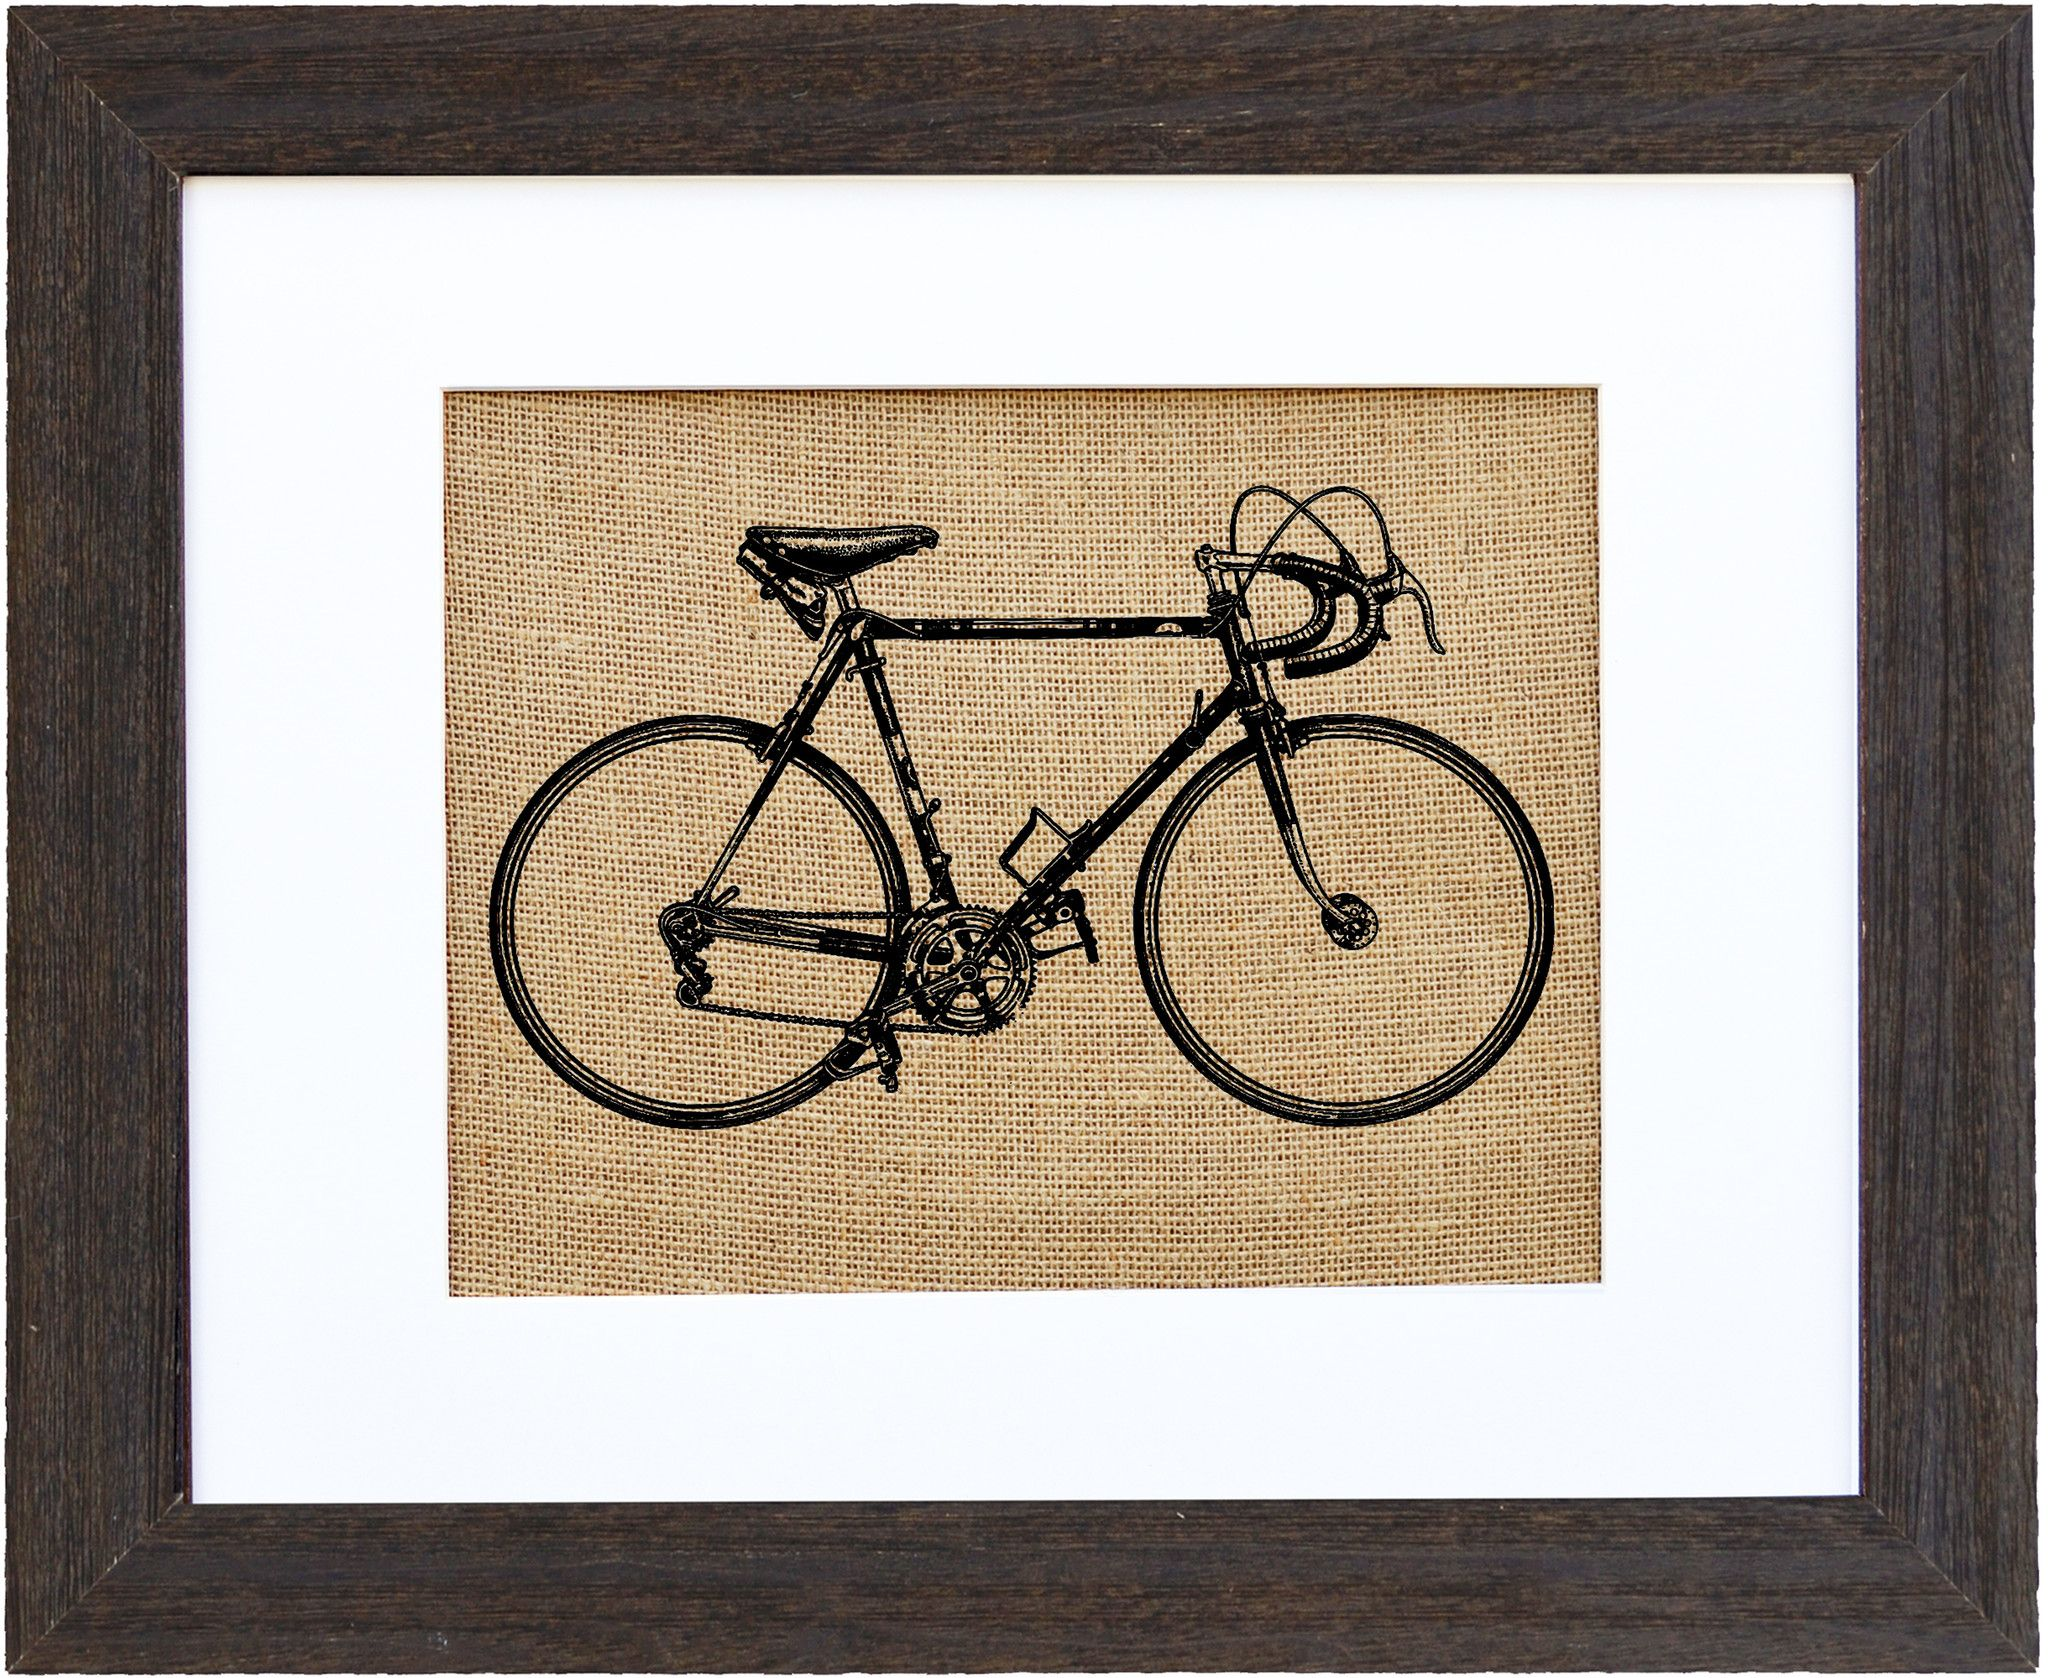 Vintage 1940's Racing Bicycle Burlap Art wall decor by Fiber and Water || rustic natural burlap home decor with athletic racing bike- for him, for her, for them